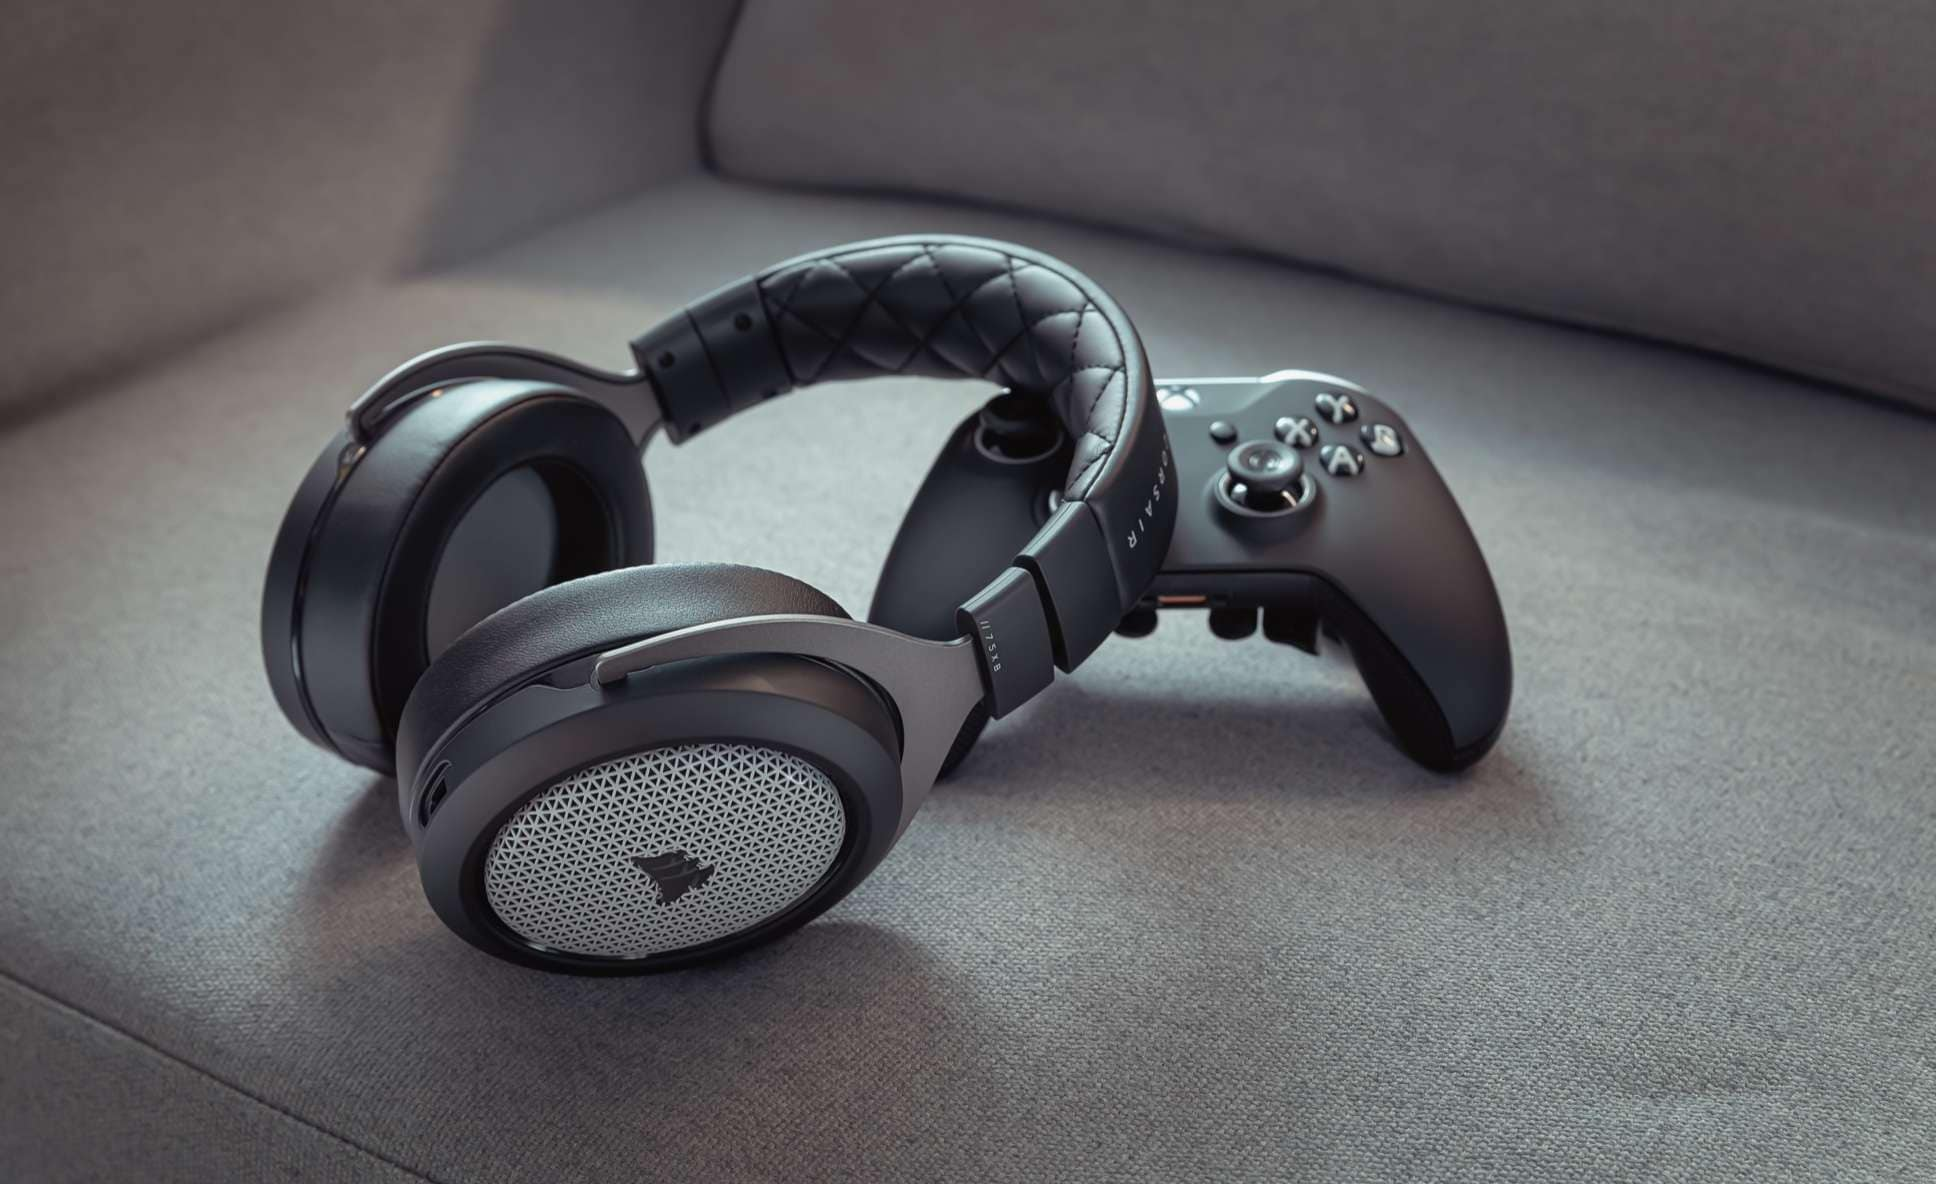 HS75 XB WIRELESS Gaming Headset